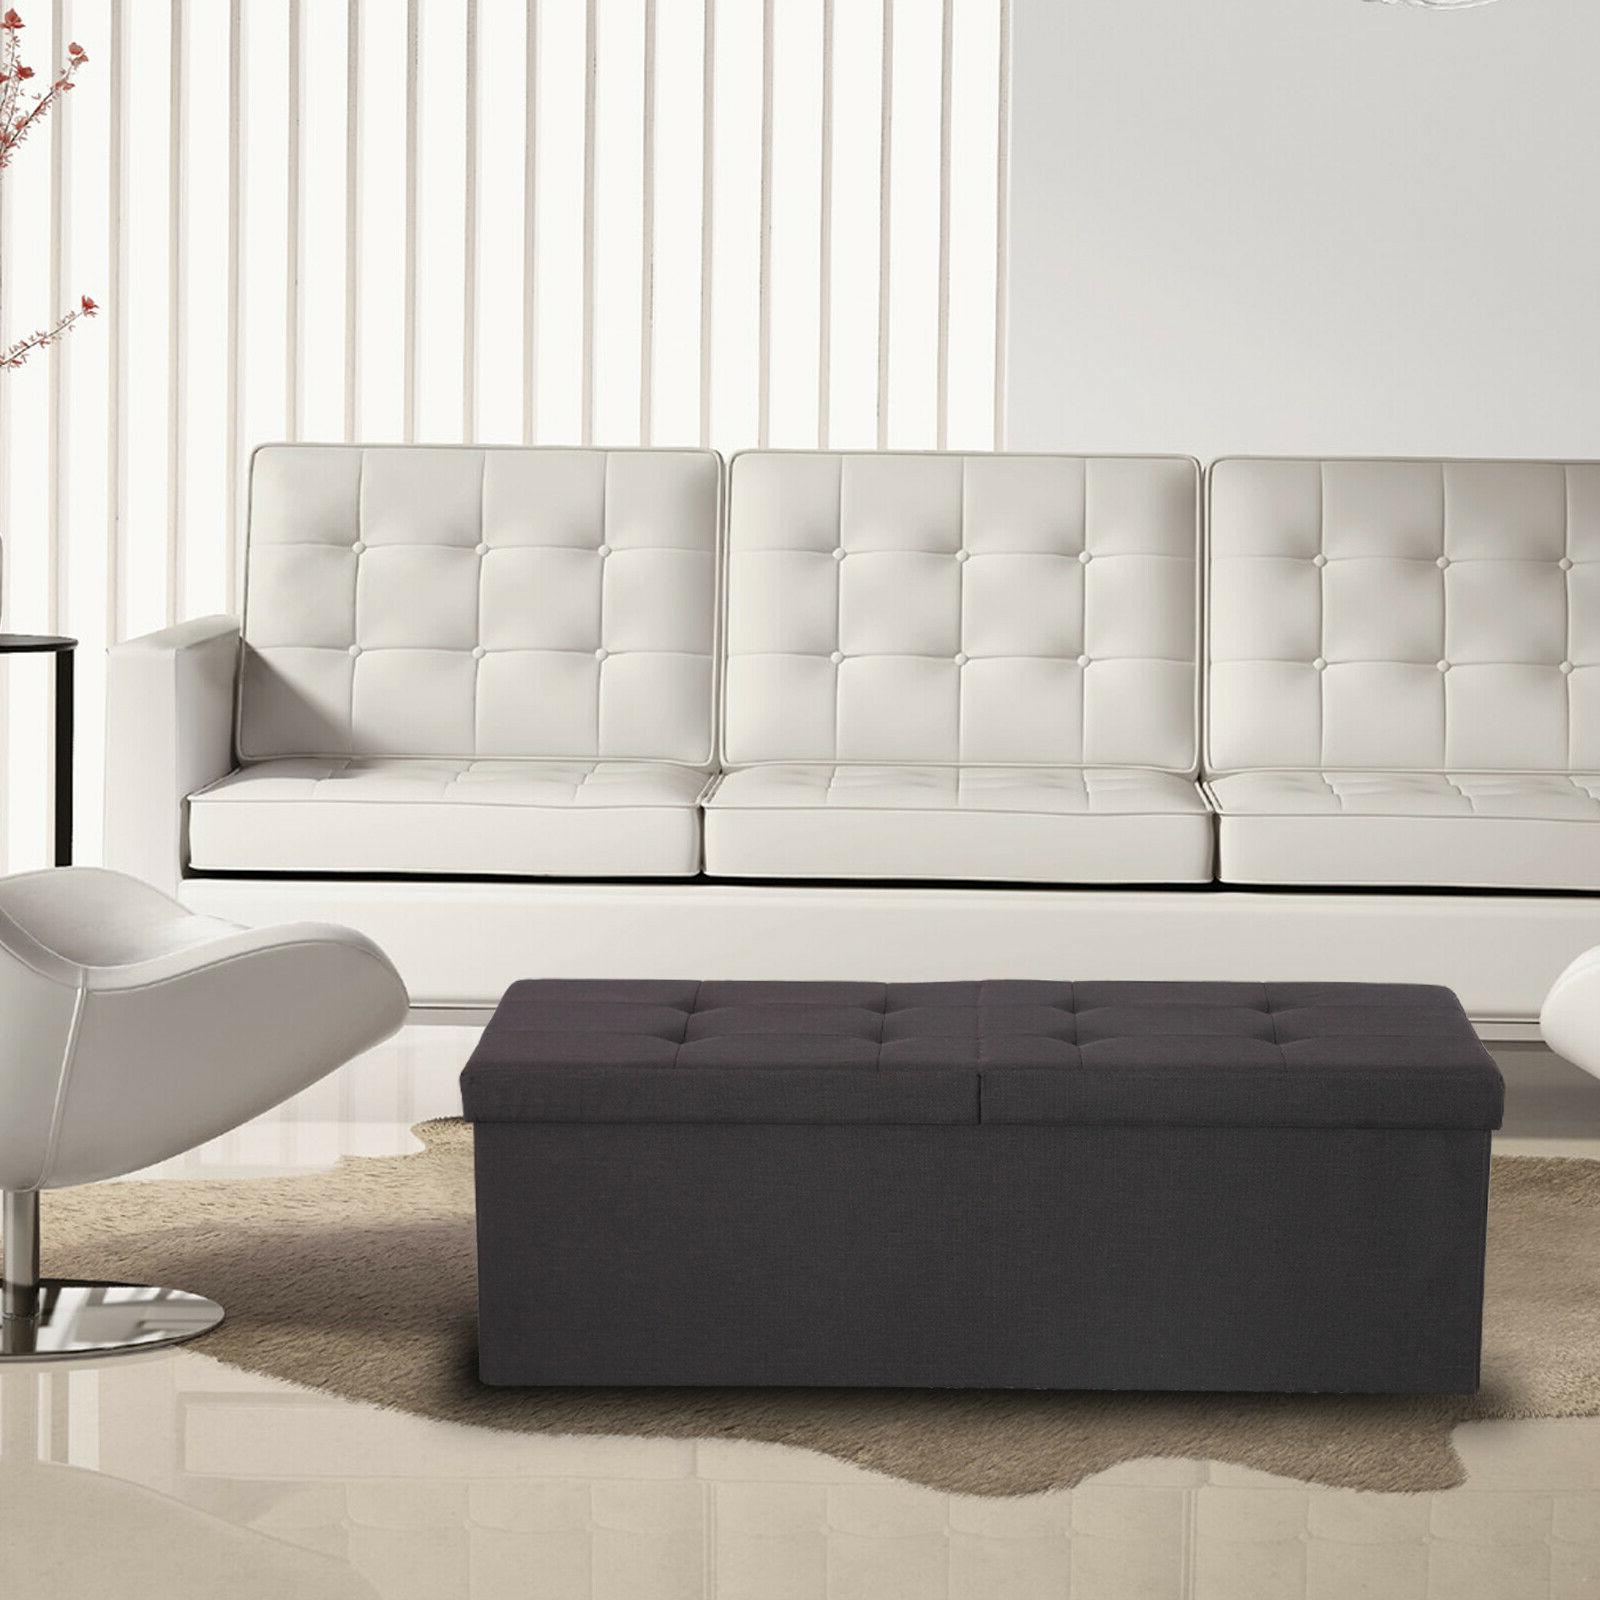 Ottoman Bench Large Chest Footrest Coffee